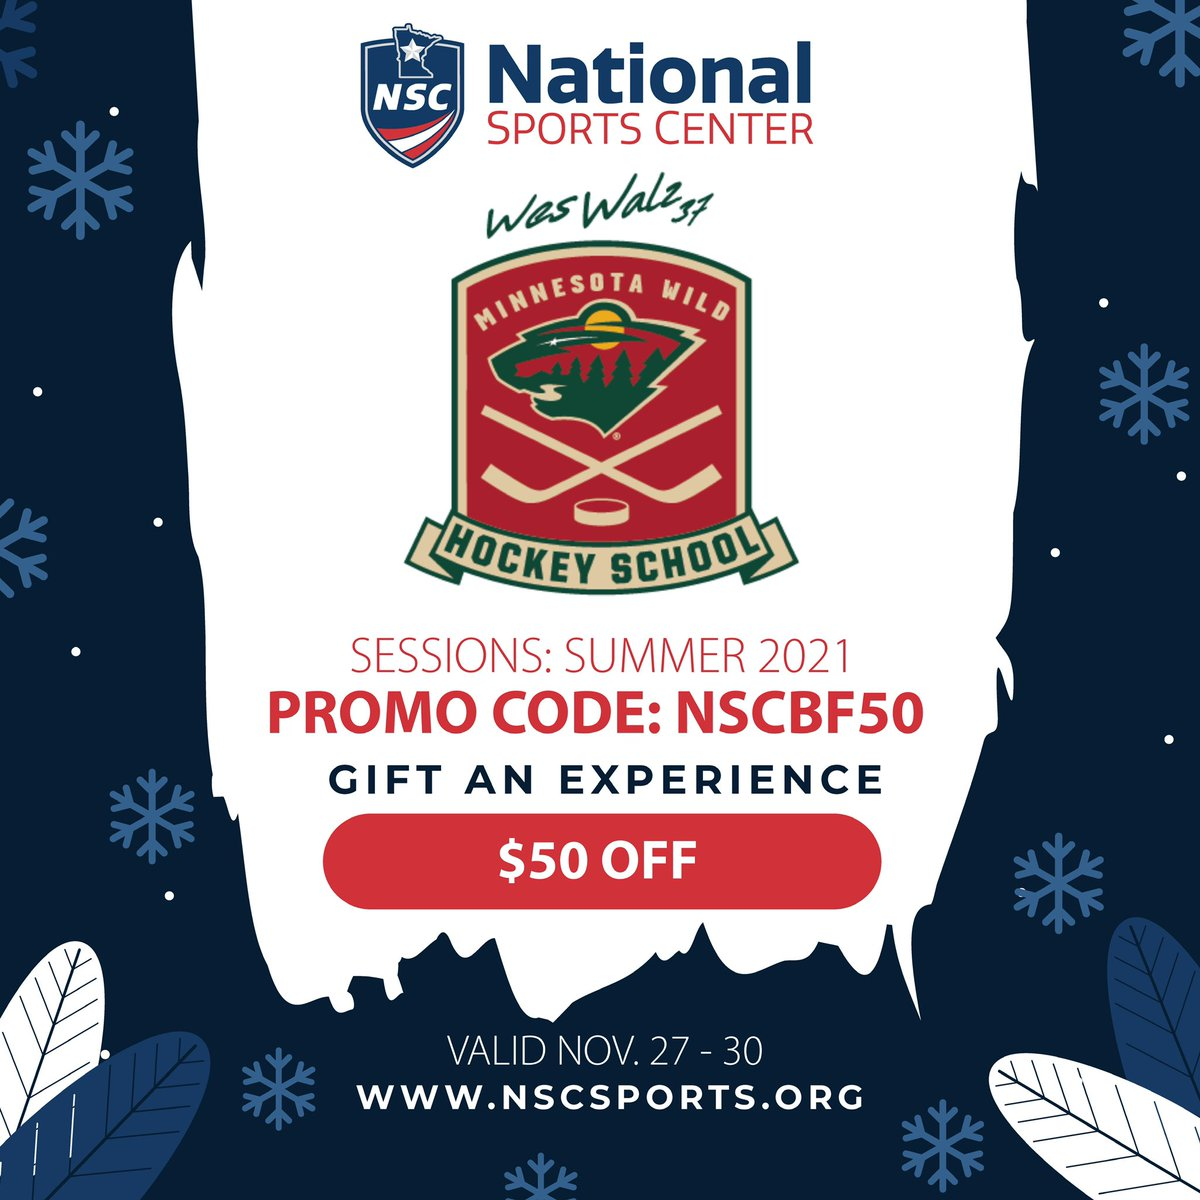 Learn from the pros at @walz3737 @mnwild Hockey School!  Receive $50 off 2021 registration fees by applying via https://t.co/UHFQlqADM8 and entering Black Friday promo code NSCBF50 at checkout. (10 player cap applies to this promotion) https://t.co/brJU2XTOKG